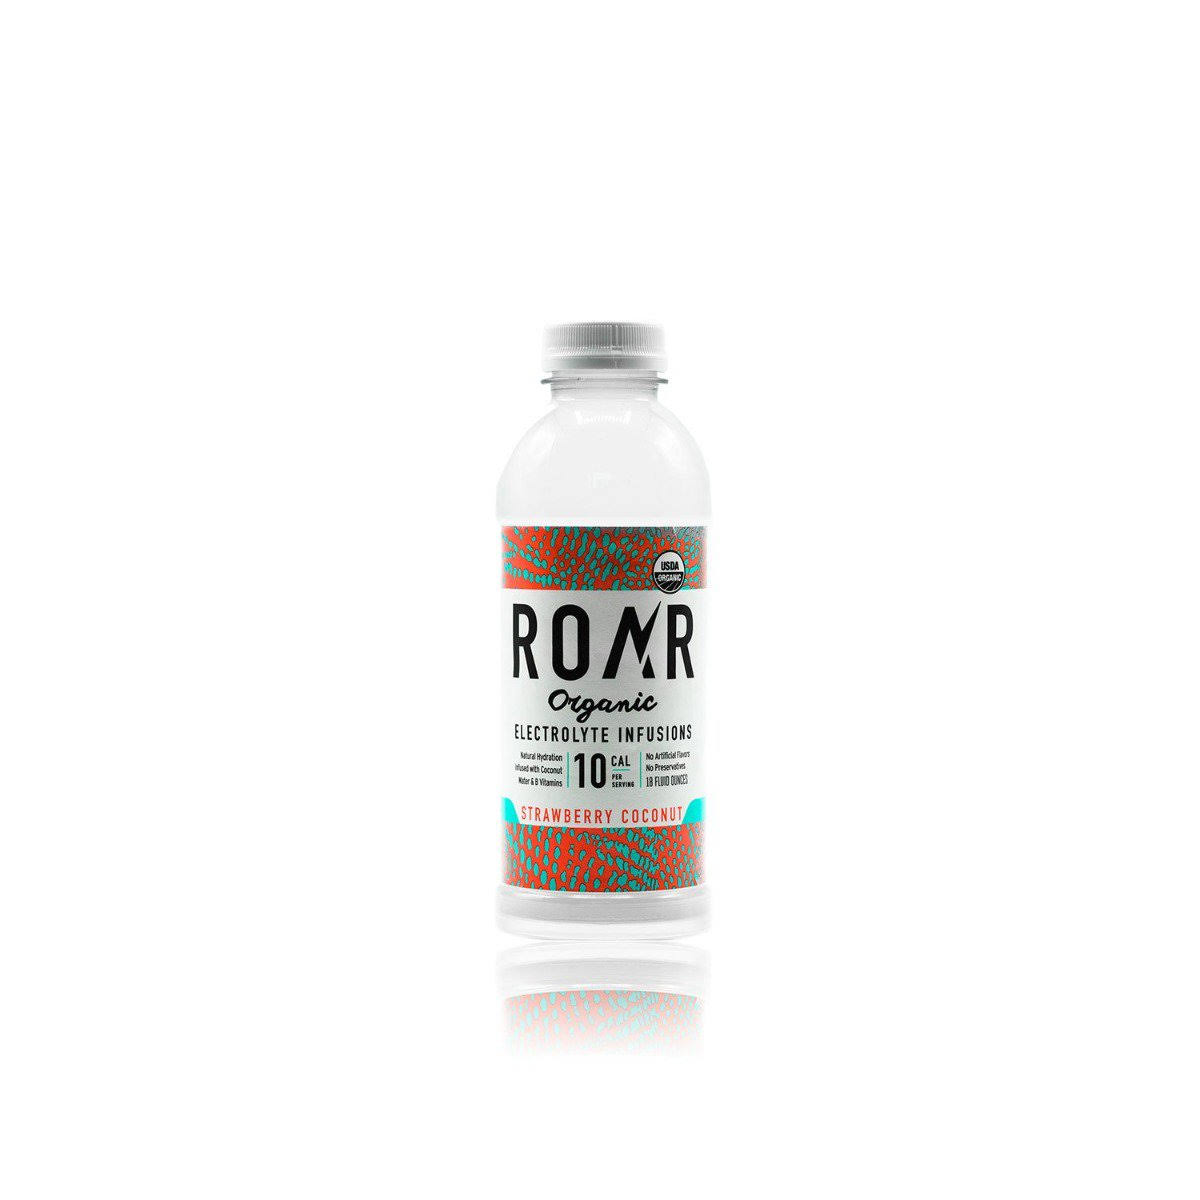 Roar Organic Electrolyte Infusions, Strawberry Coconut - 18 fluid ounces